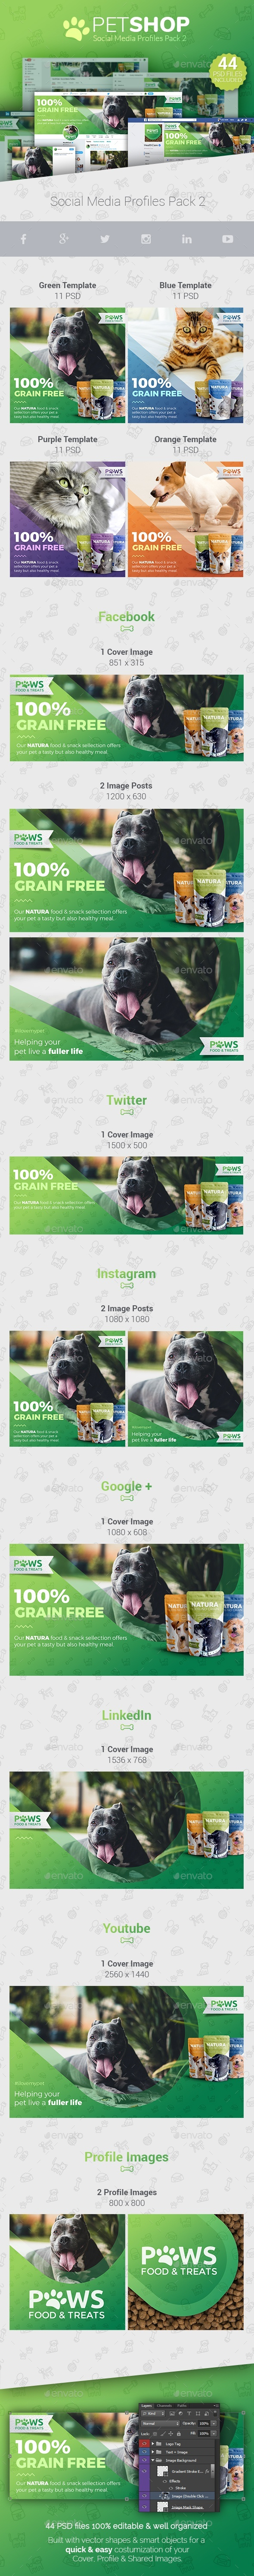 PetShop - Social Media Cover/Profile Pack 2 - Social Media Web Elements